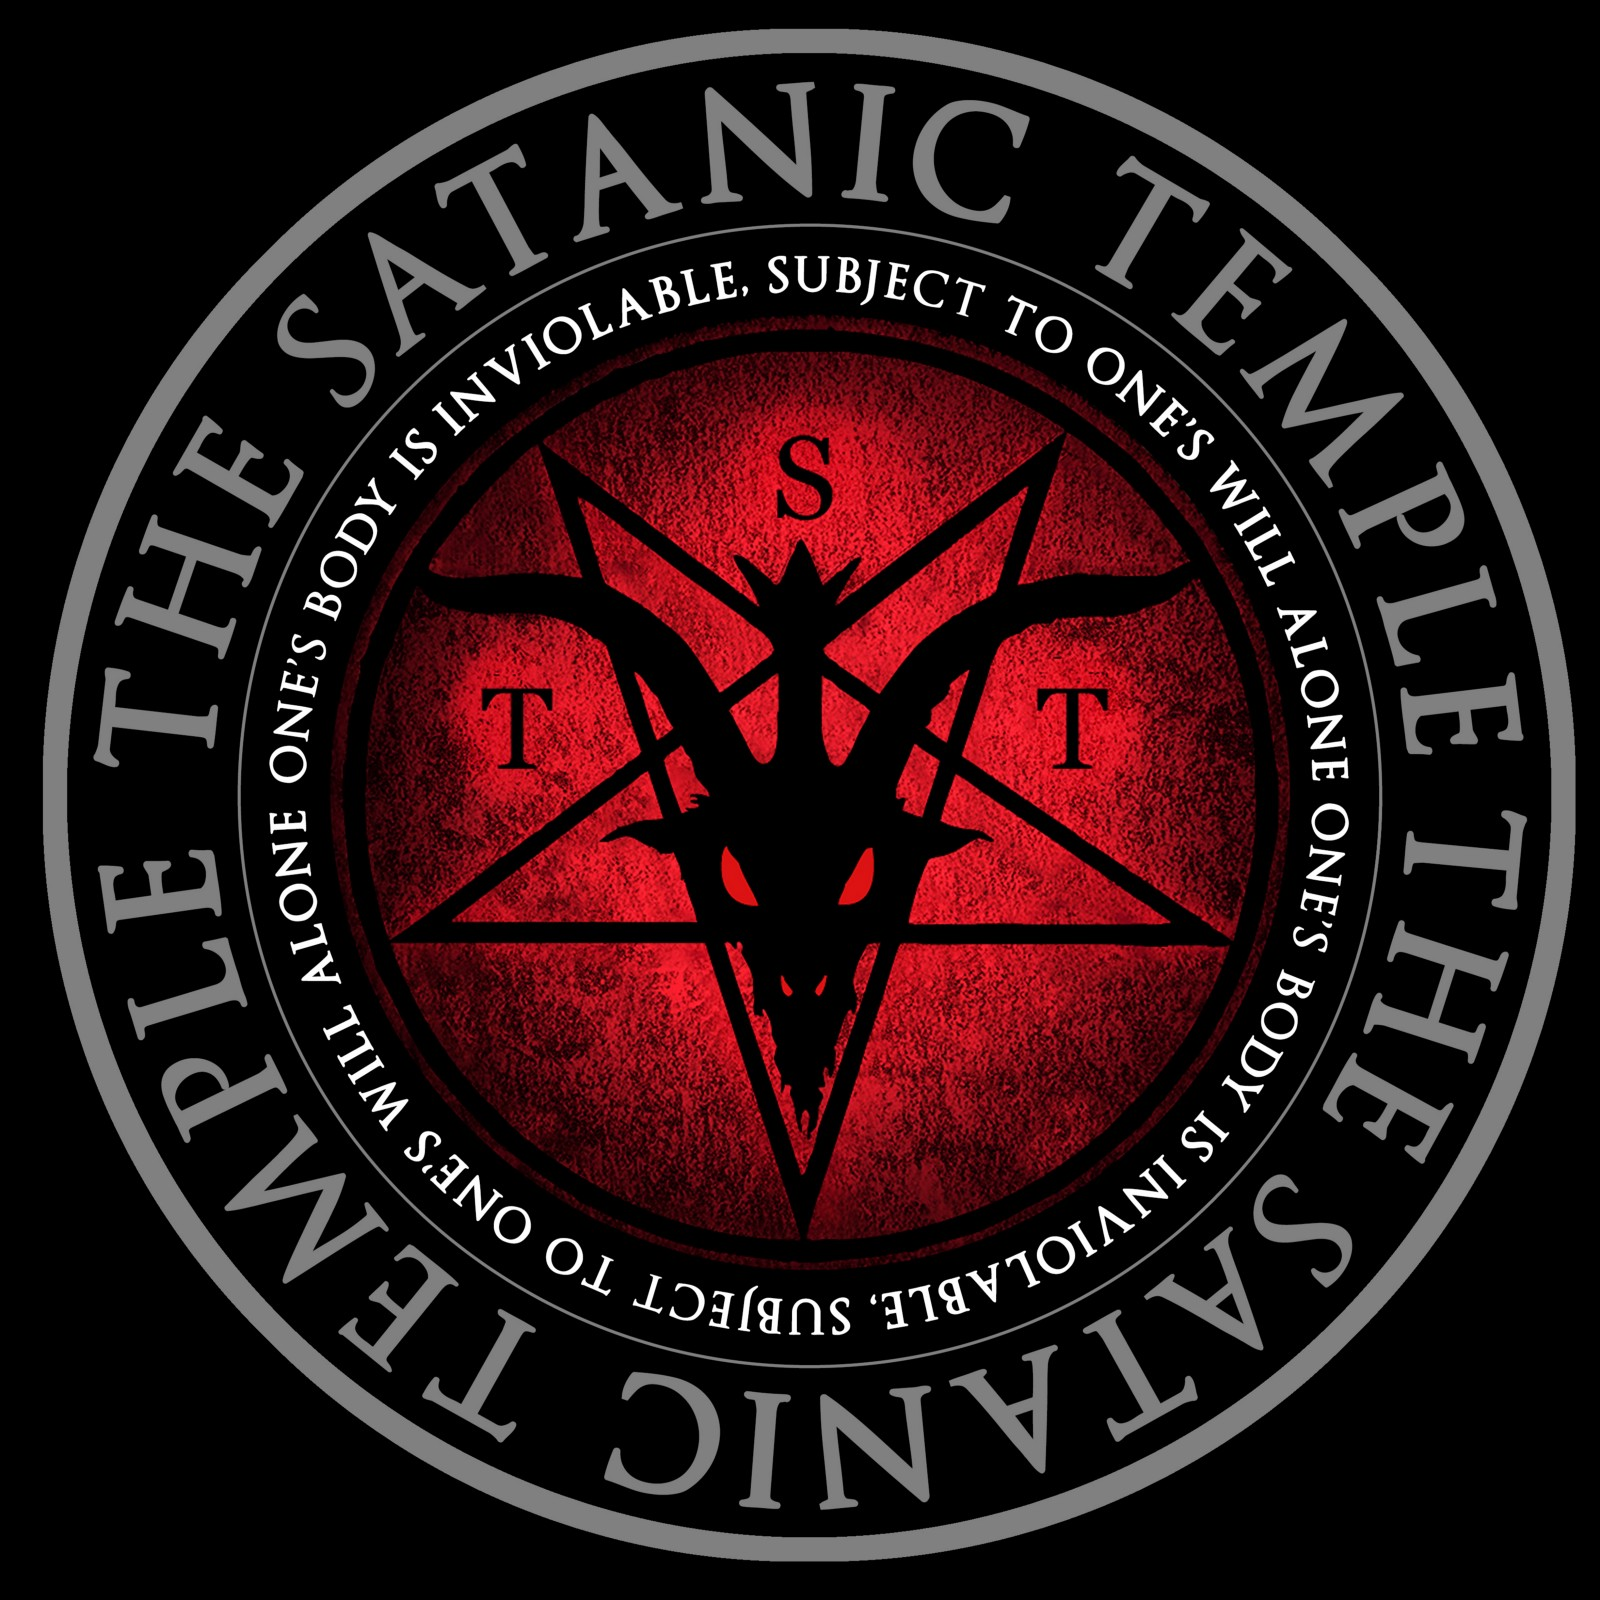 Missouri Court To Hear Landmark Case On Satanic Temple